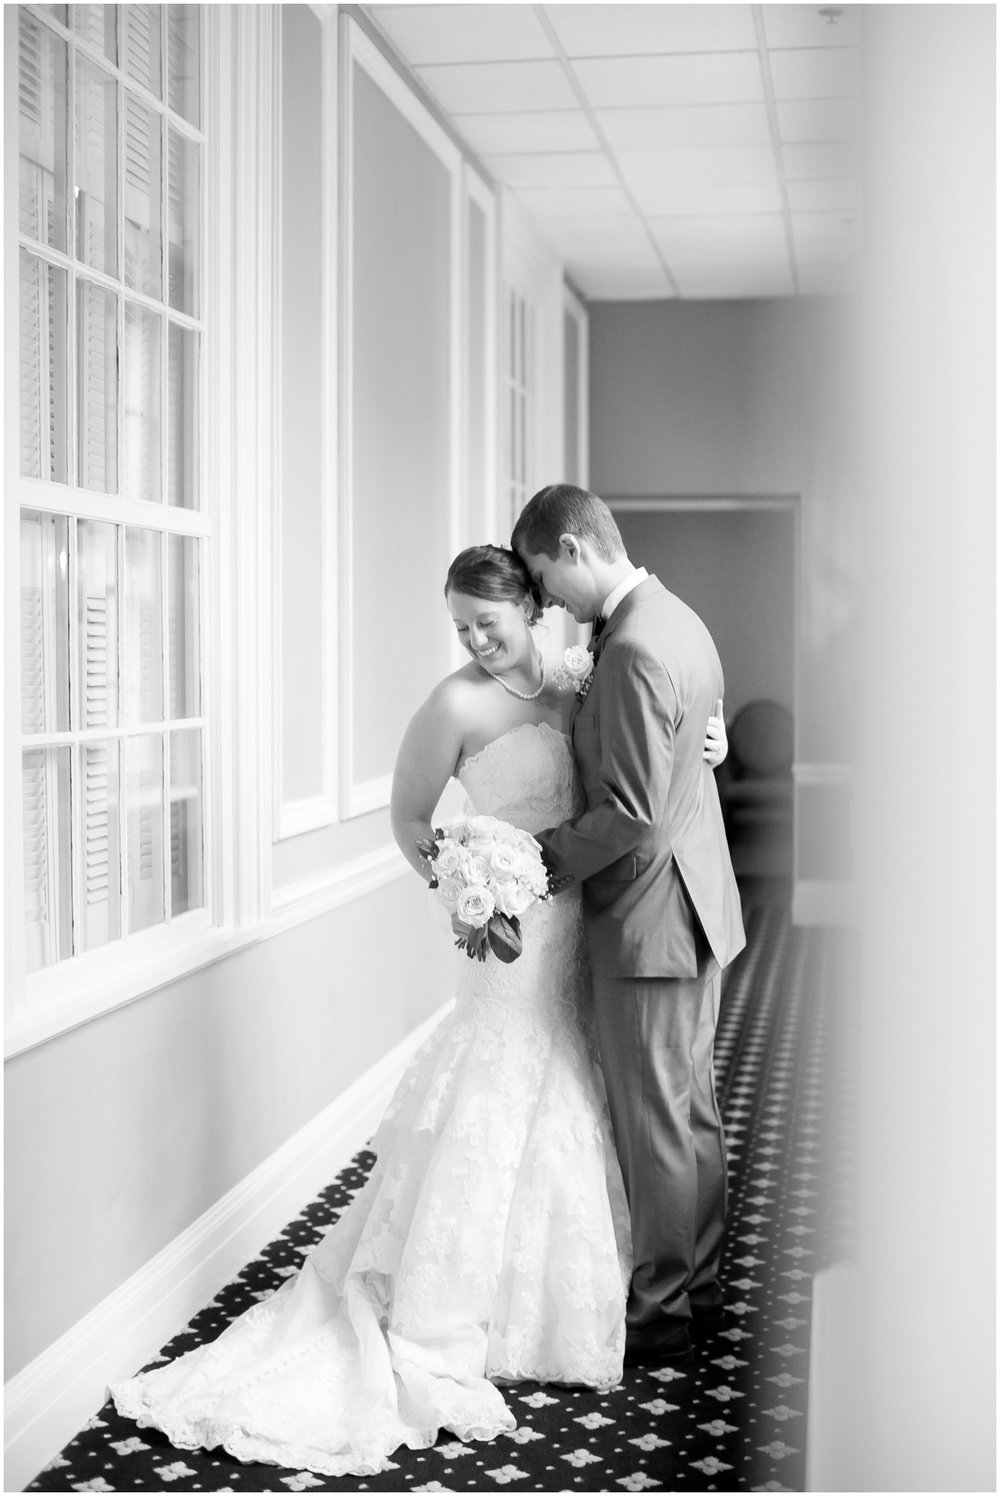 Madison_Club_Madison_Wisconsin_Wedding_Photographer_Spring_Rainy_Wedding_2637.jpg